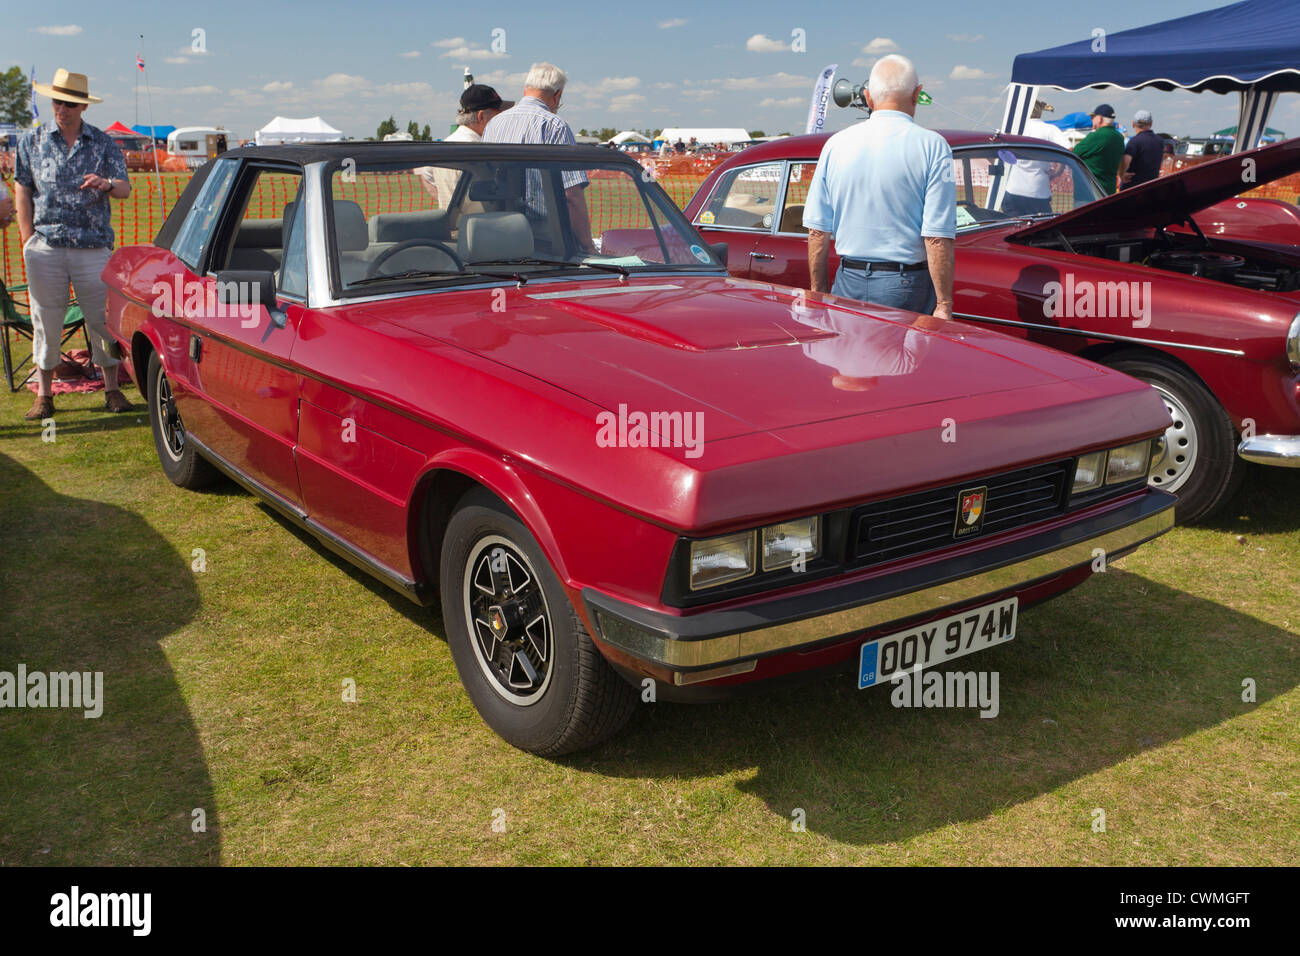 Bristol 412 Beaufighter car at a show in the UK - Stock Image